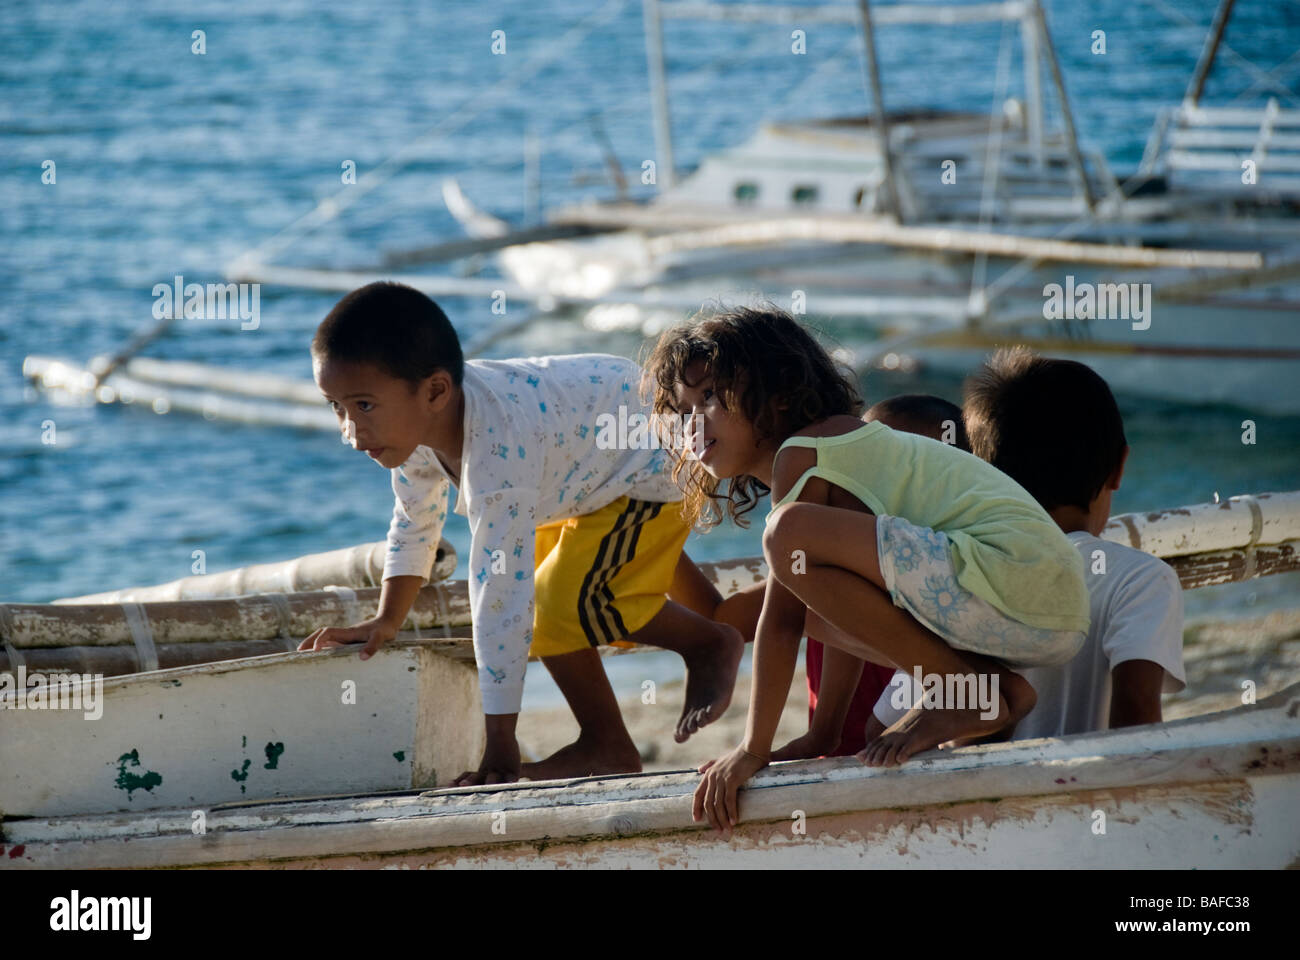 Children playing in a boat on the beach at Apo Island, Philippines Stock Photo